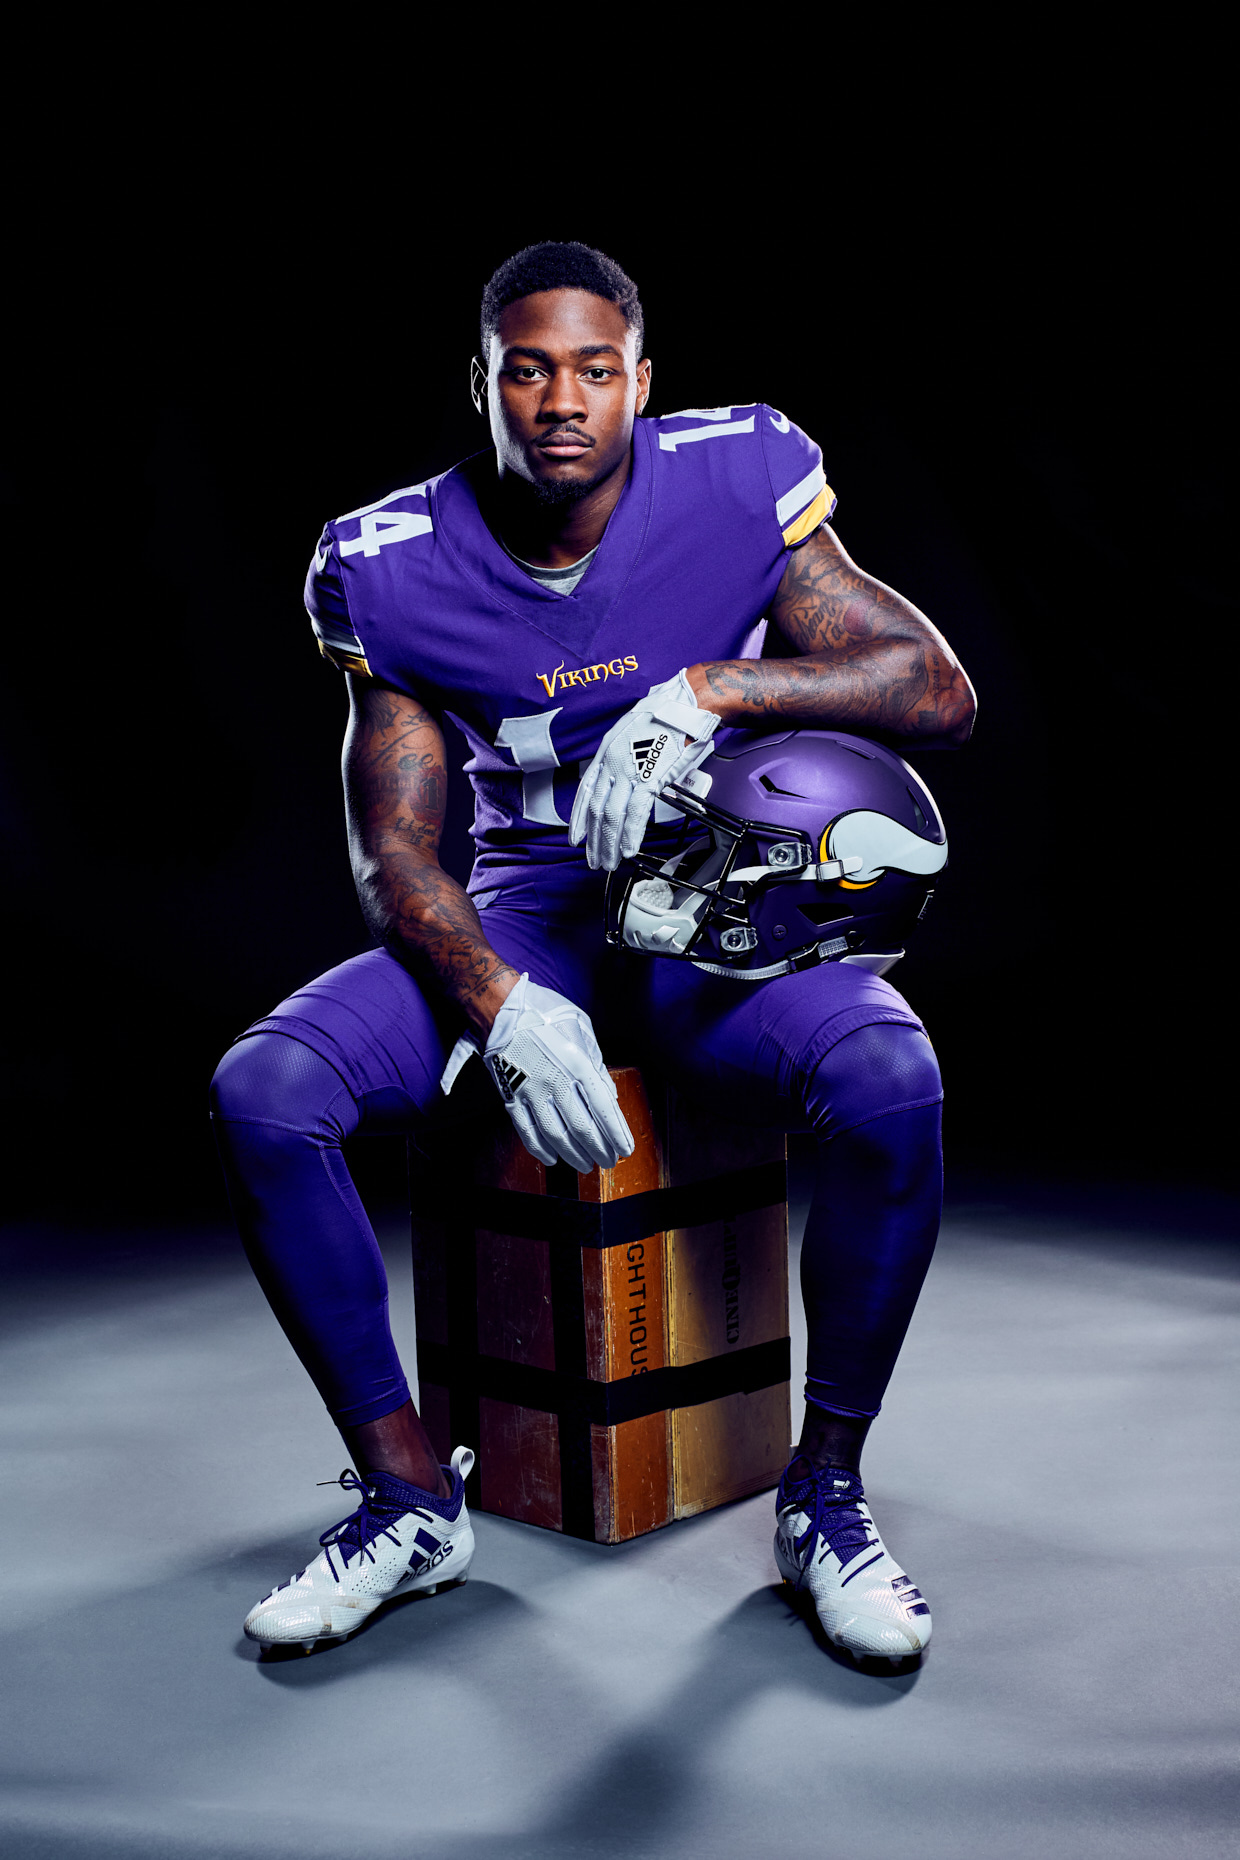 James Exley Stefon Diggs